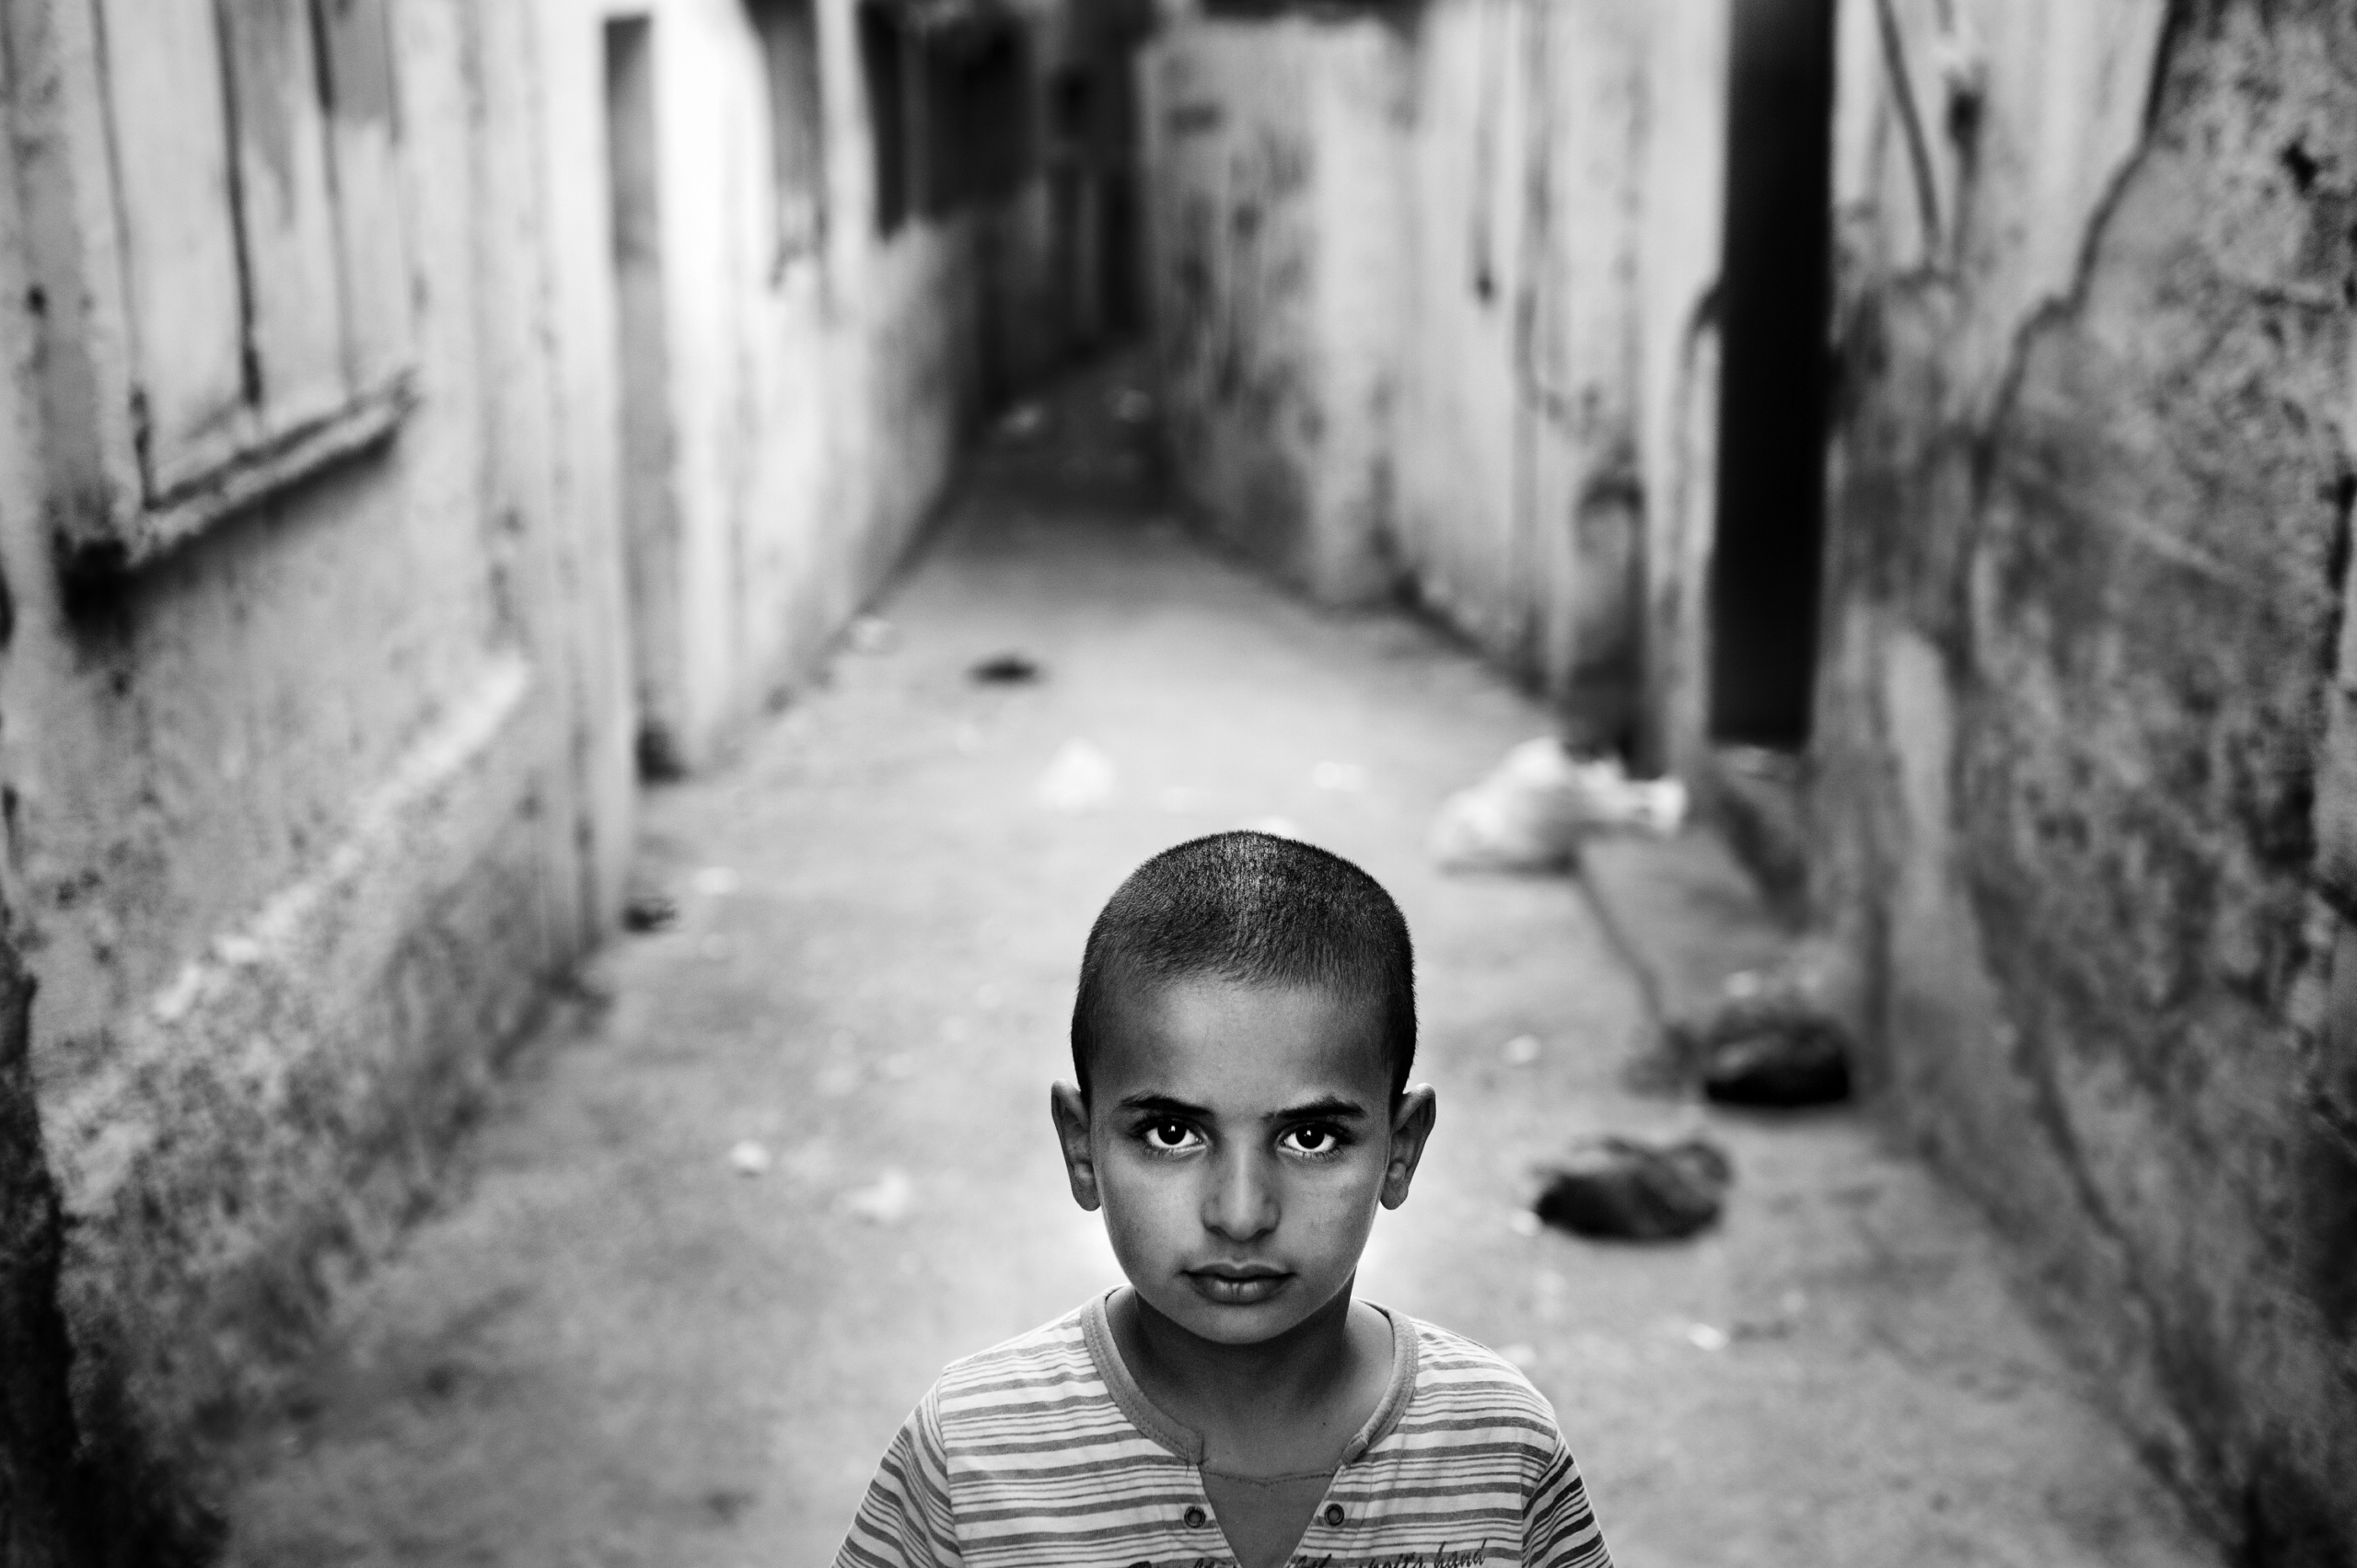 Palestine, Nablus : Palestinian refugee in the Balata refugee camp in the West Bank City of Nablus